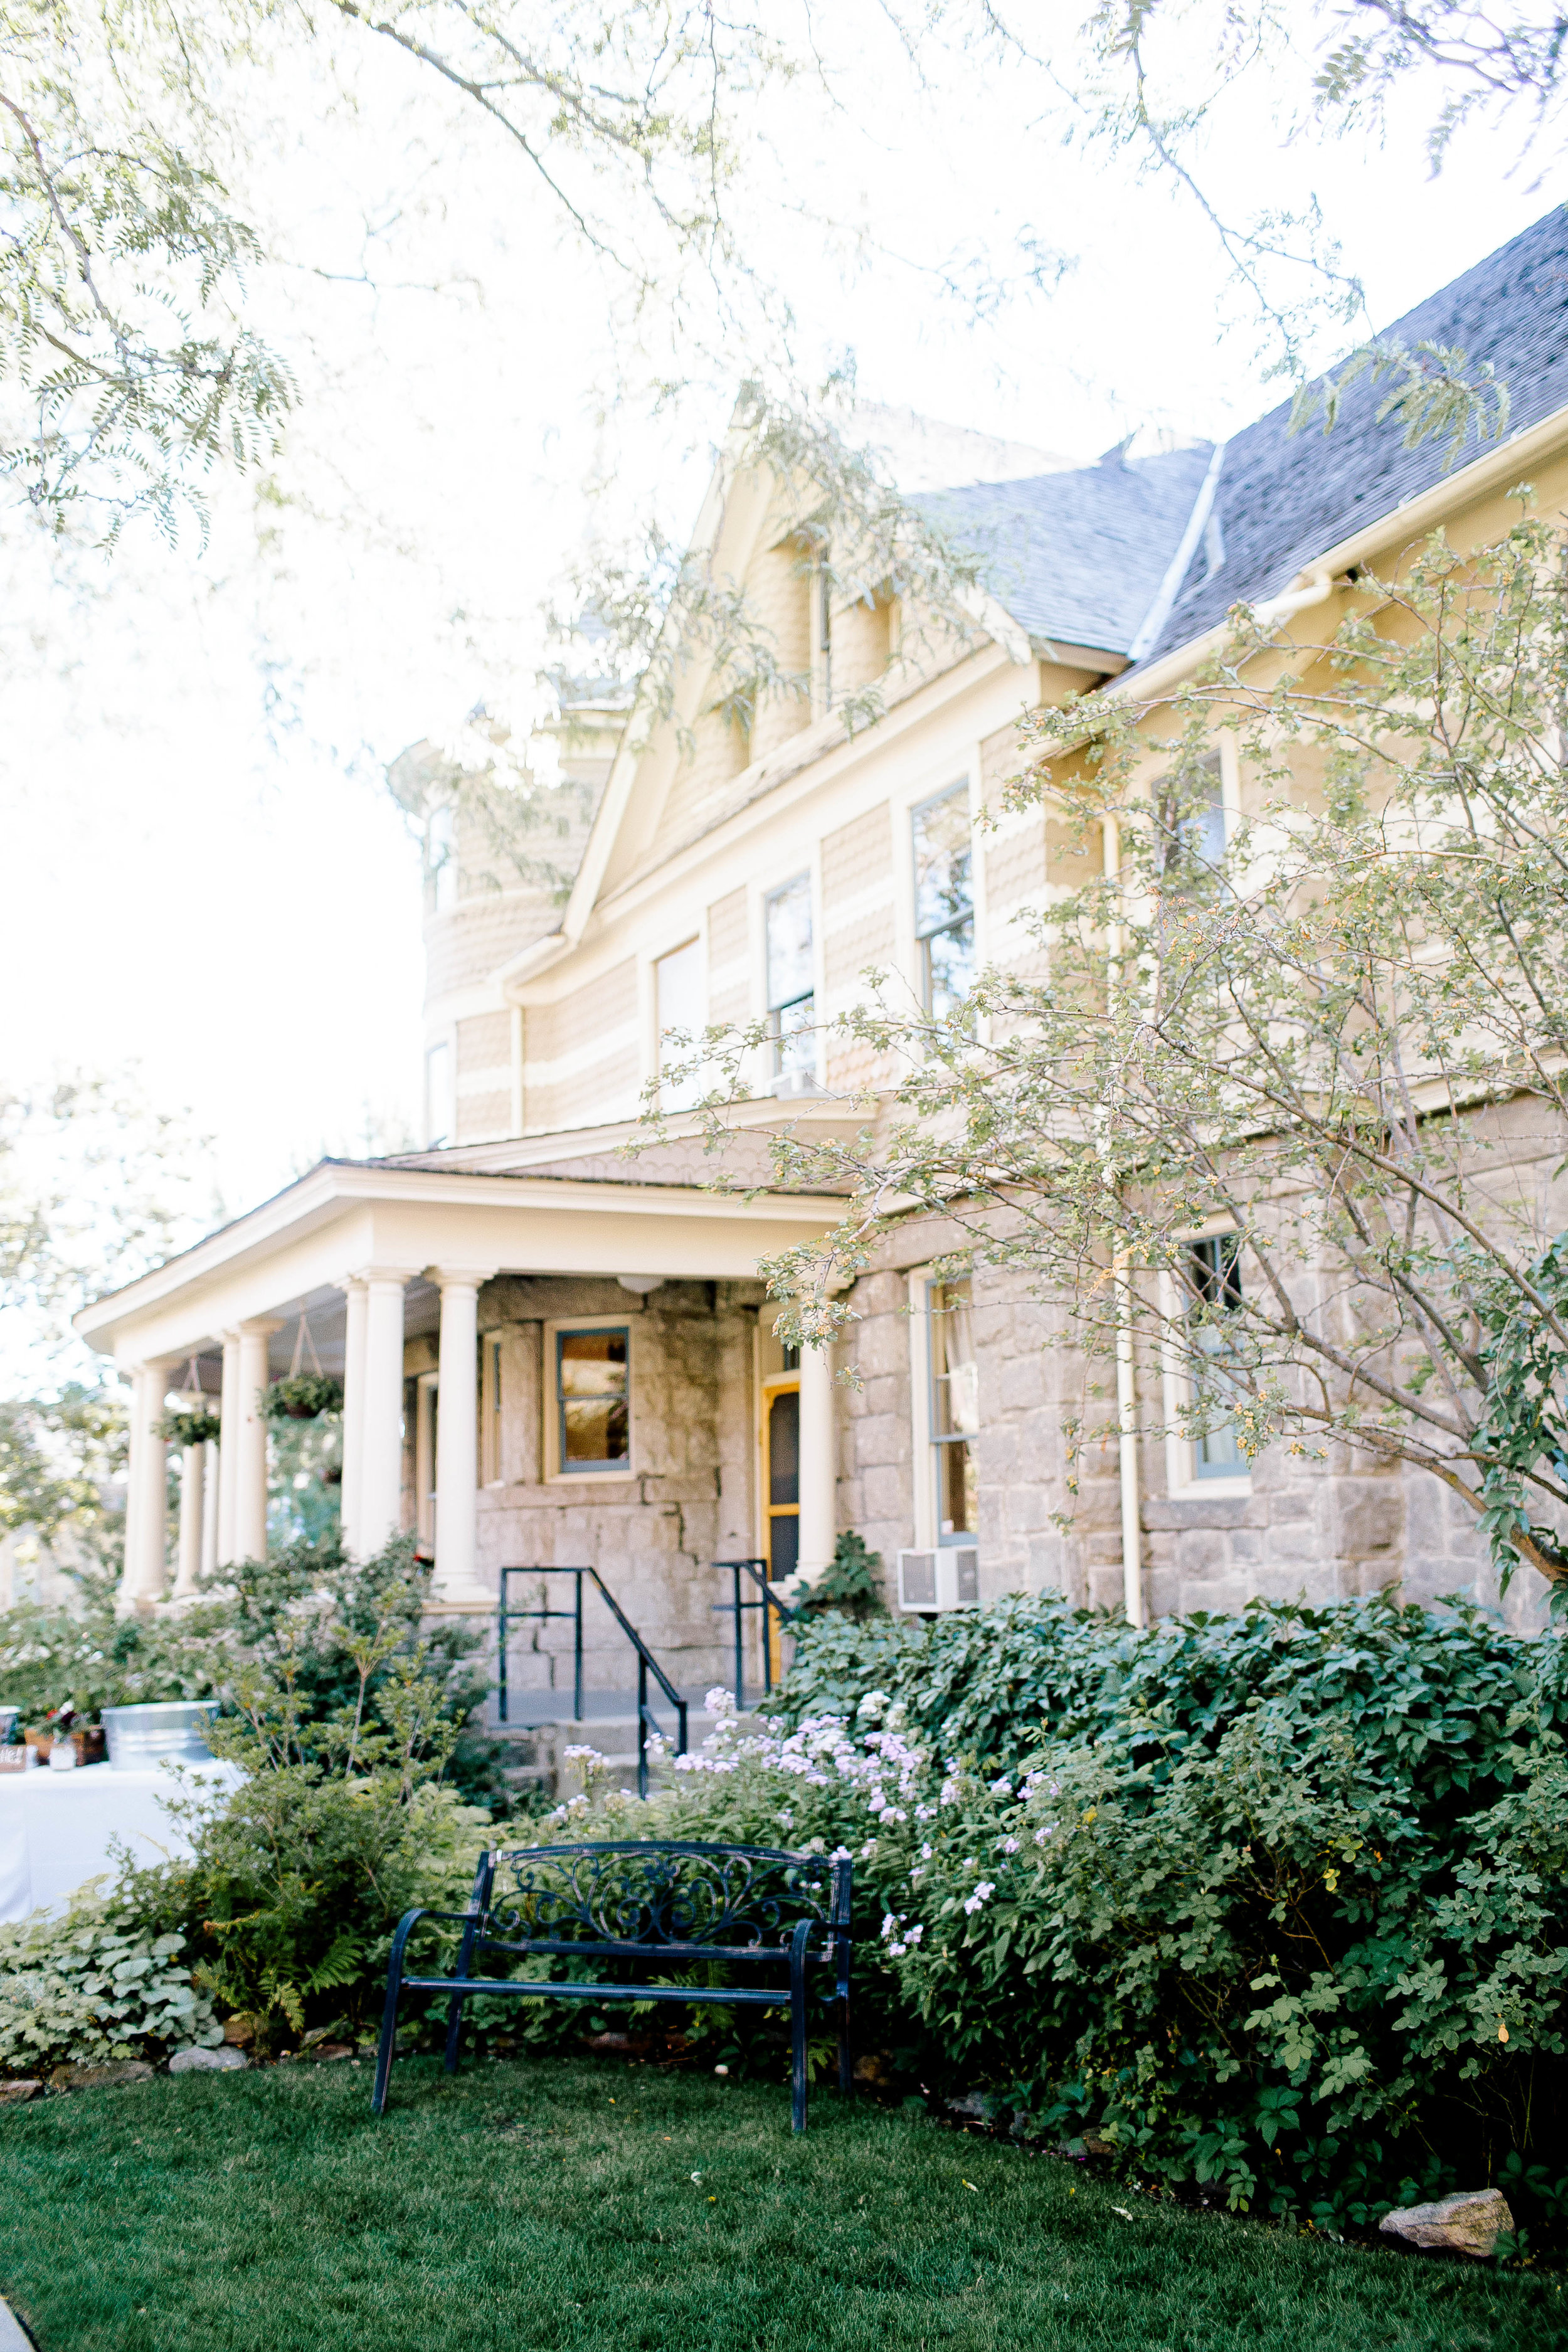 Boise Wedding Photography at the Bishop's House by Taylor Bellais- Idaho Wedding Photography by Taylor Bellais